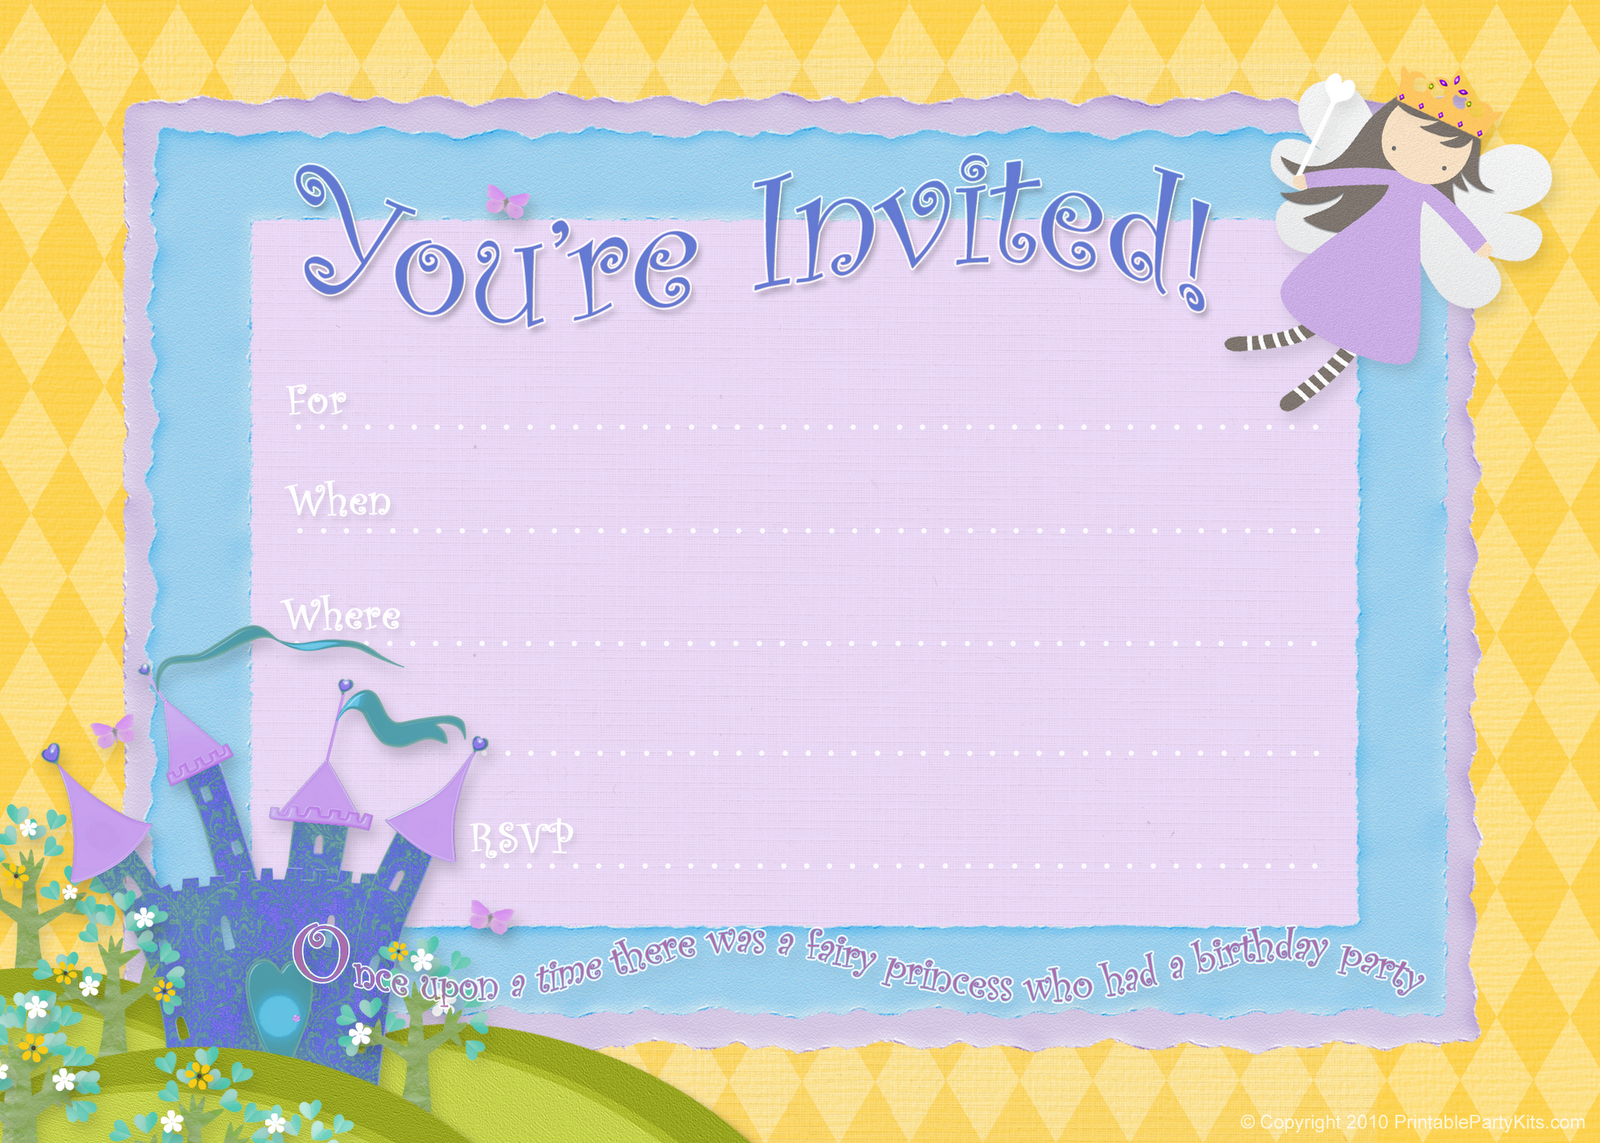 graphic about Disney Princess Birthday Invitations Free Printable titled disney princess birthday social gathering invites absolutely free printables